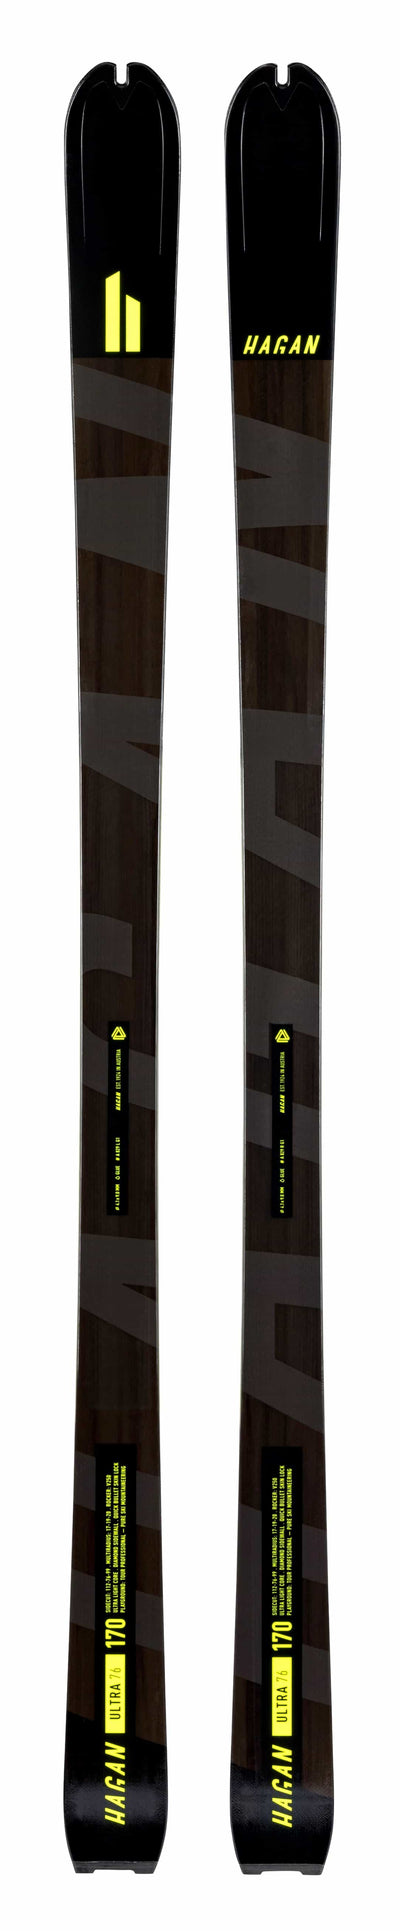 Hagan Ultra 65 carbon fiber alpine touring Backcountry ski for ski mountaineering big view